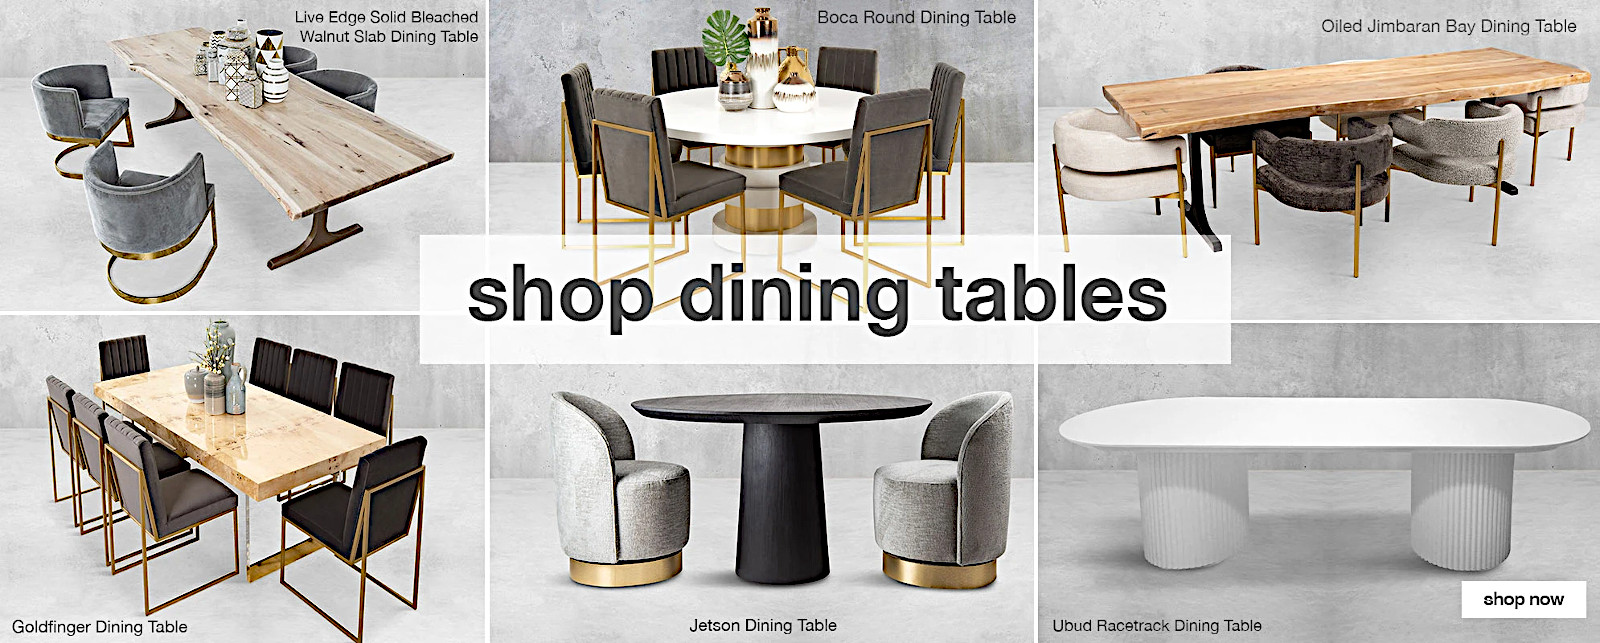 Lovable modern dining tables and chairs